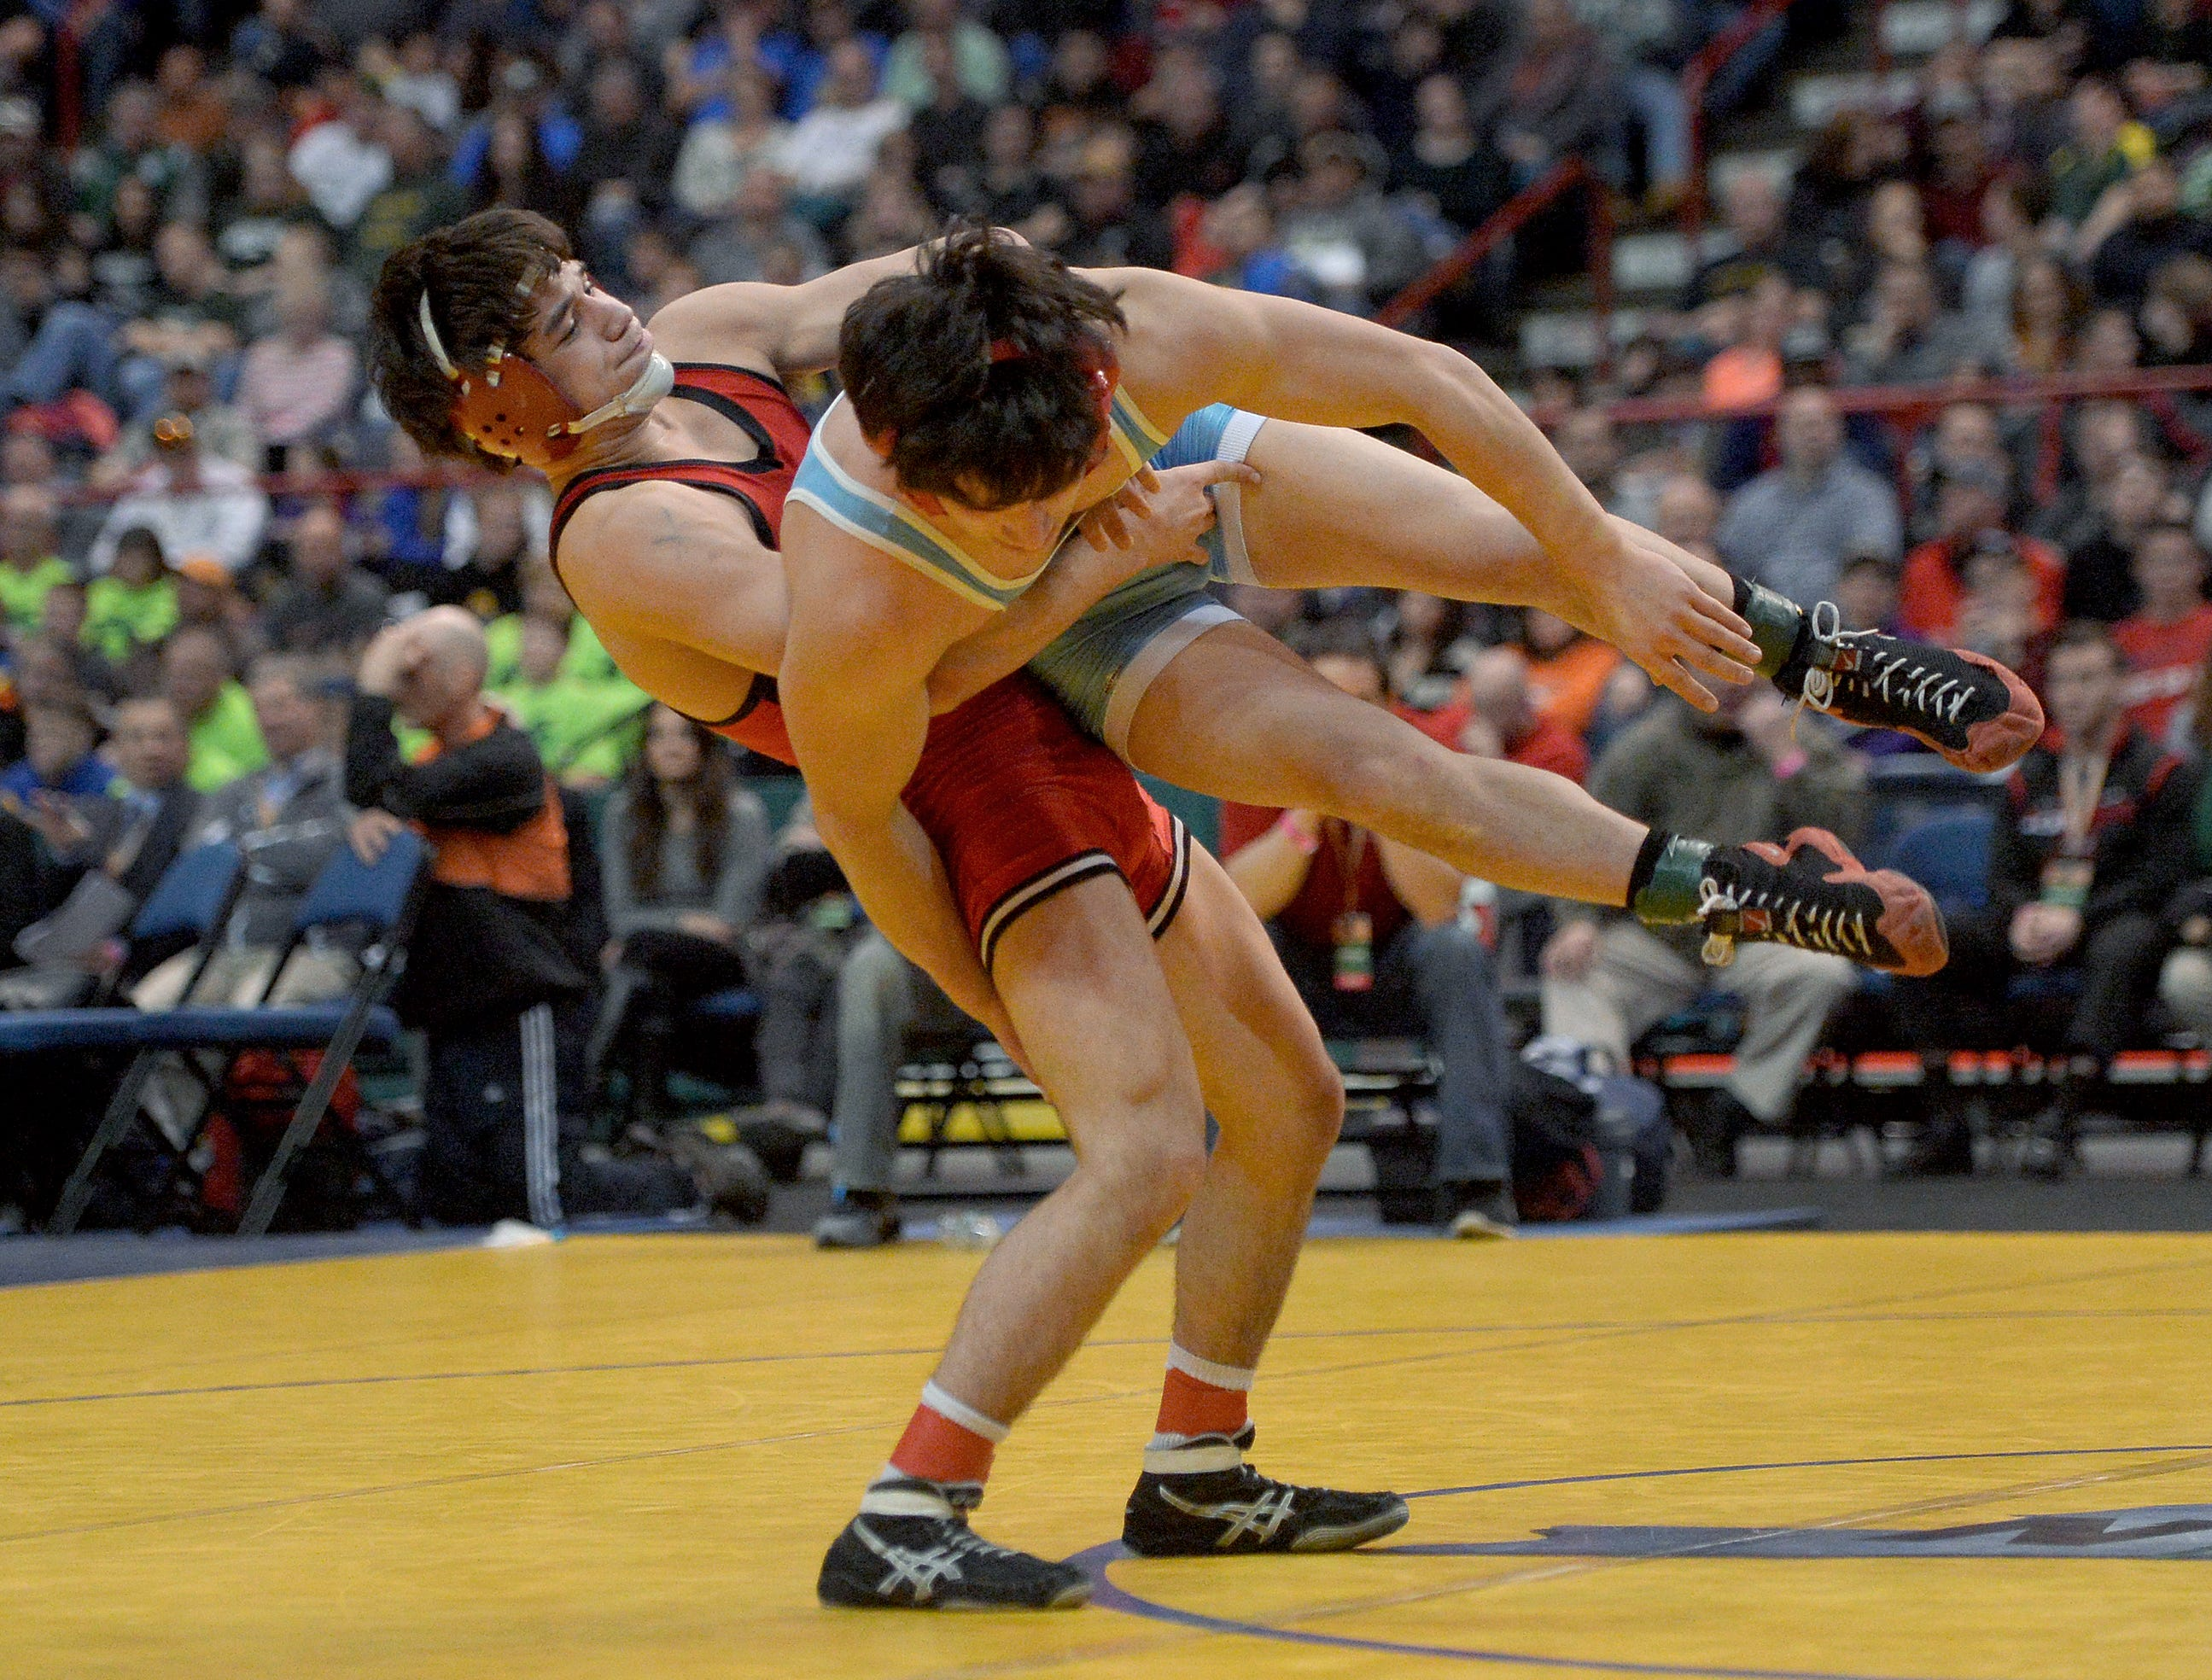 Hilton's Yianni Diakomihalis, left, wrestles against Fox Lane's Matthew Grippi-1 in the finals of the 138-pound class (Division I) during the NYSPHSAA 2016 State Wrestling Championships held at the Times Union Center in Albany, N.Y. on Saturday, Feb. 27, 2016.